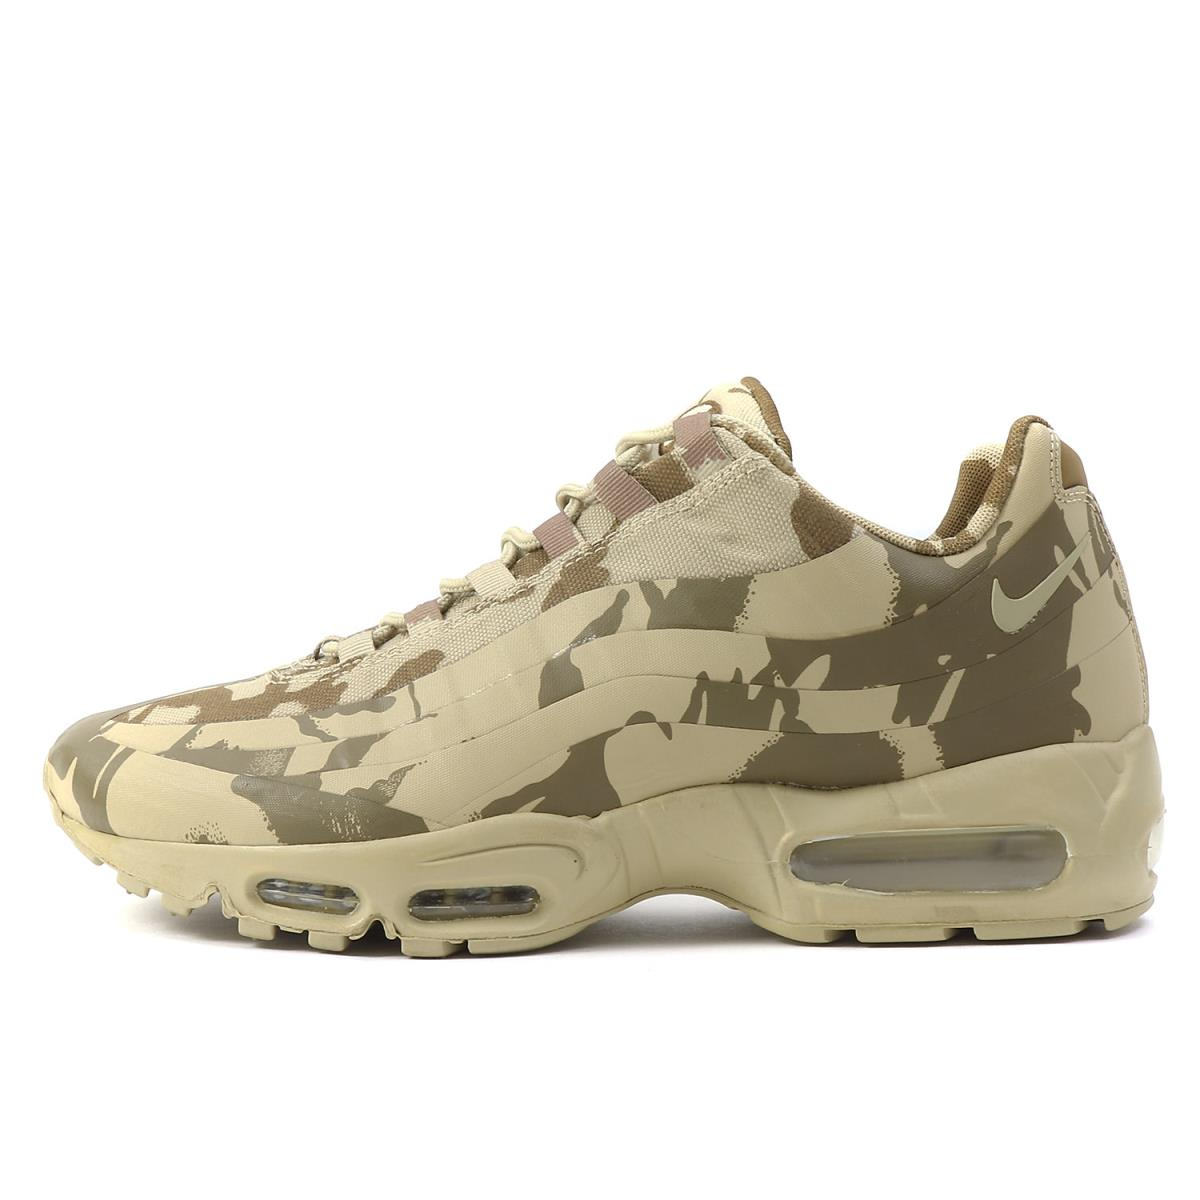 separation shoes b9631 18ca3 NIKE (Nike) AIR MAX 95 UK SP COUNTRY CAMO PACK (634,773-220 ...